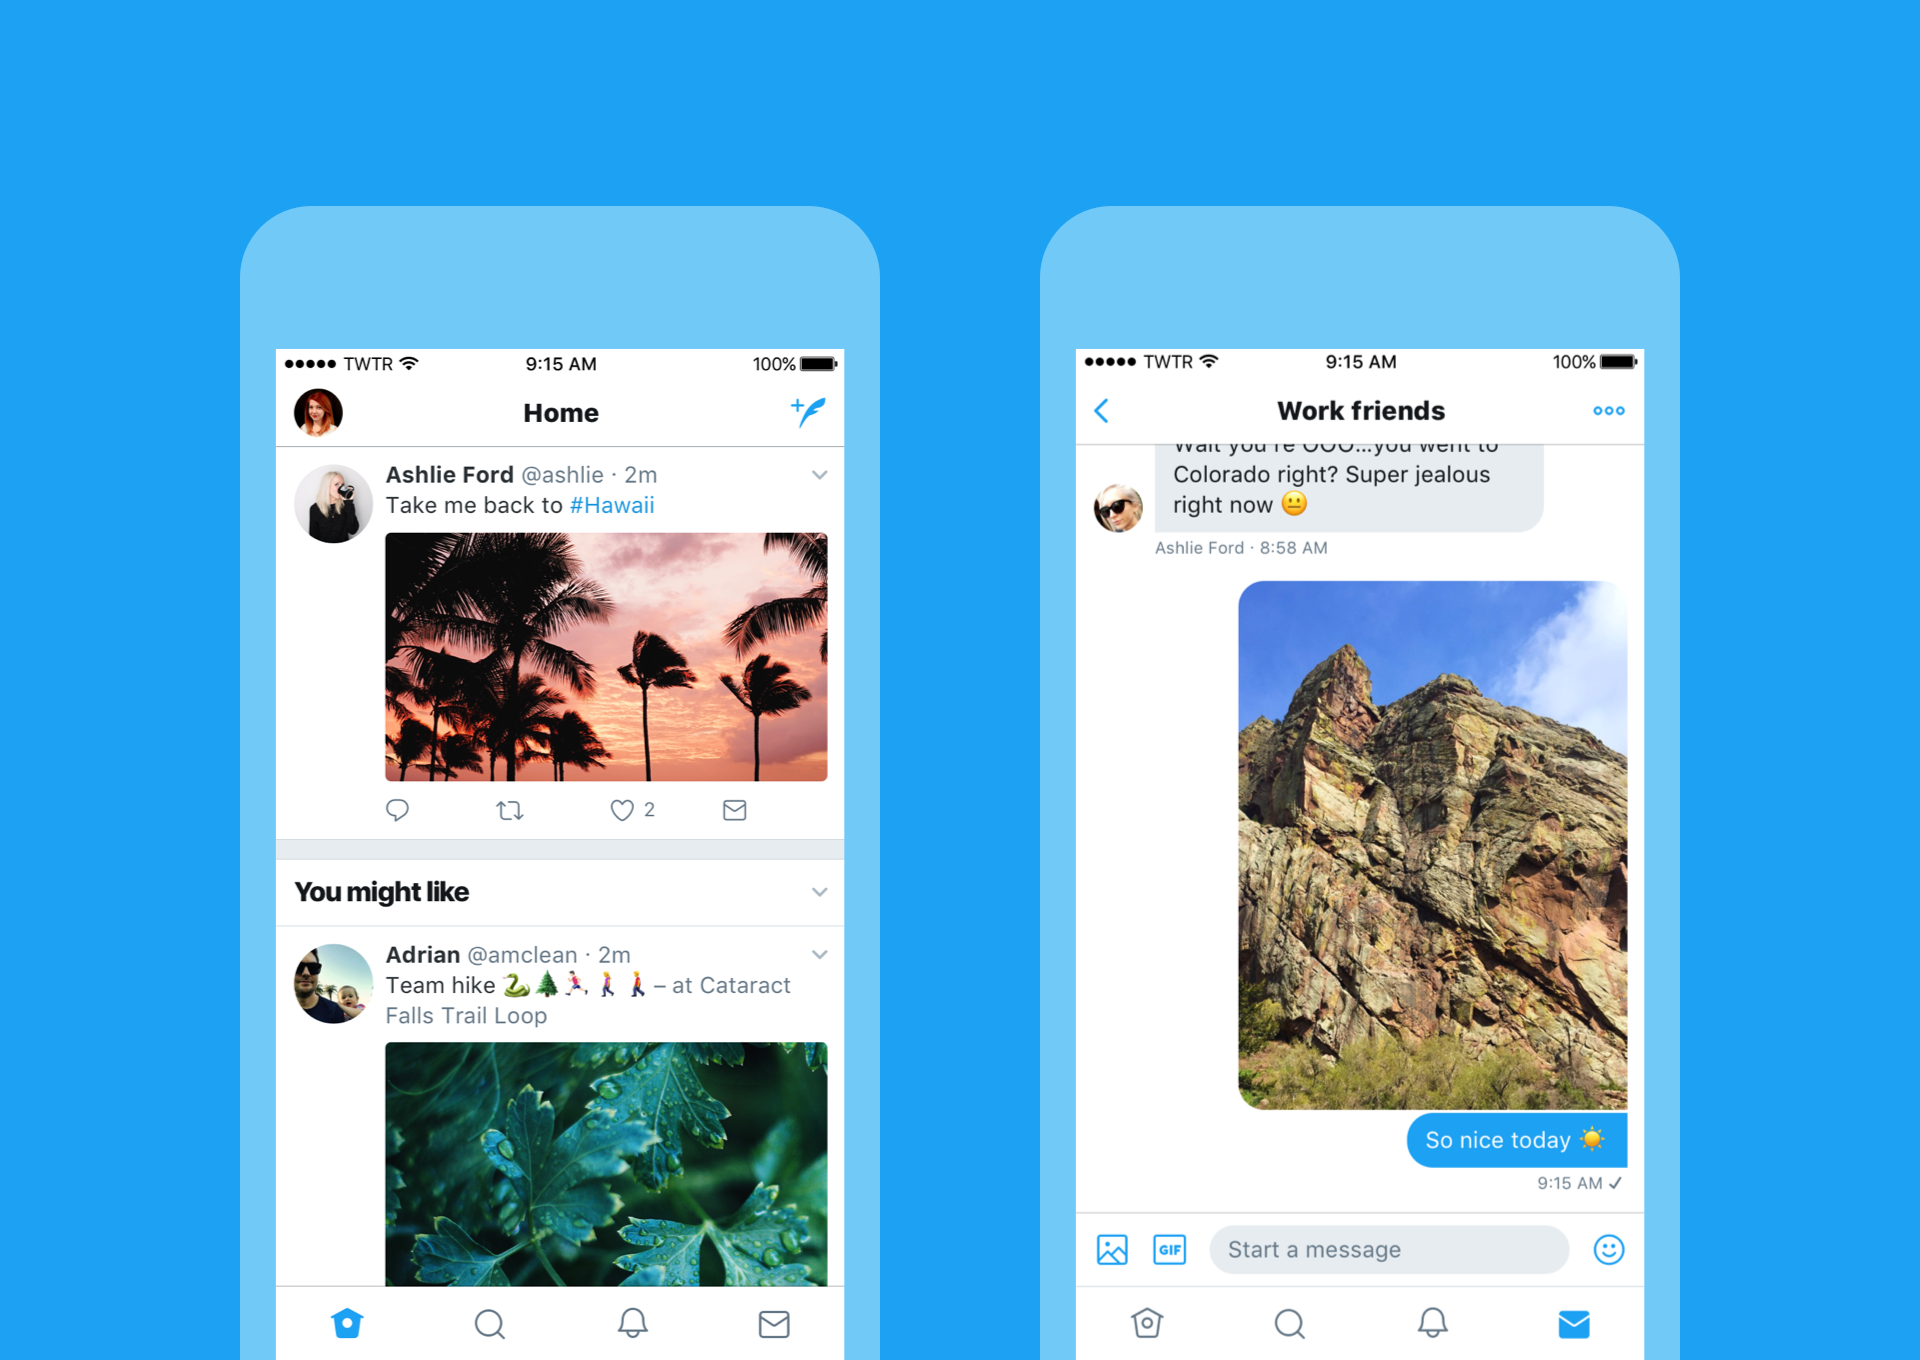 Twitter unveils updates to its platform